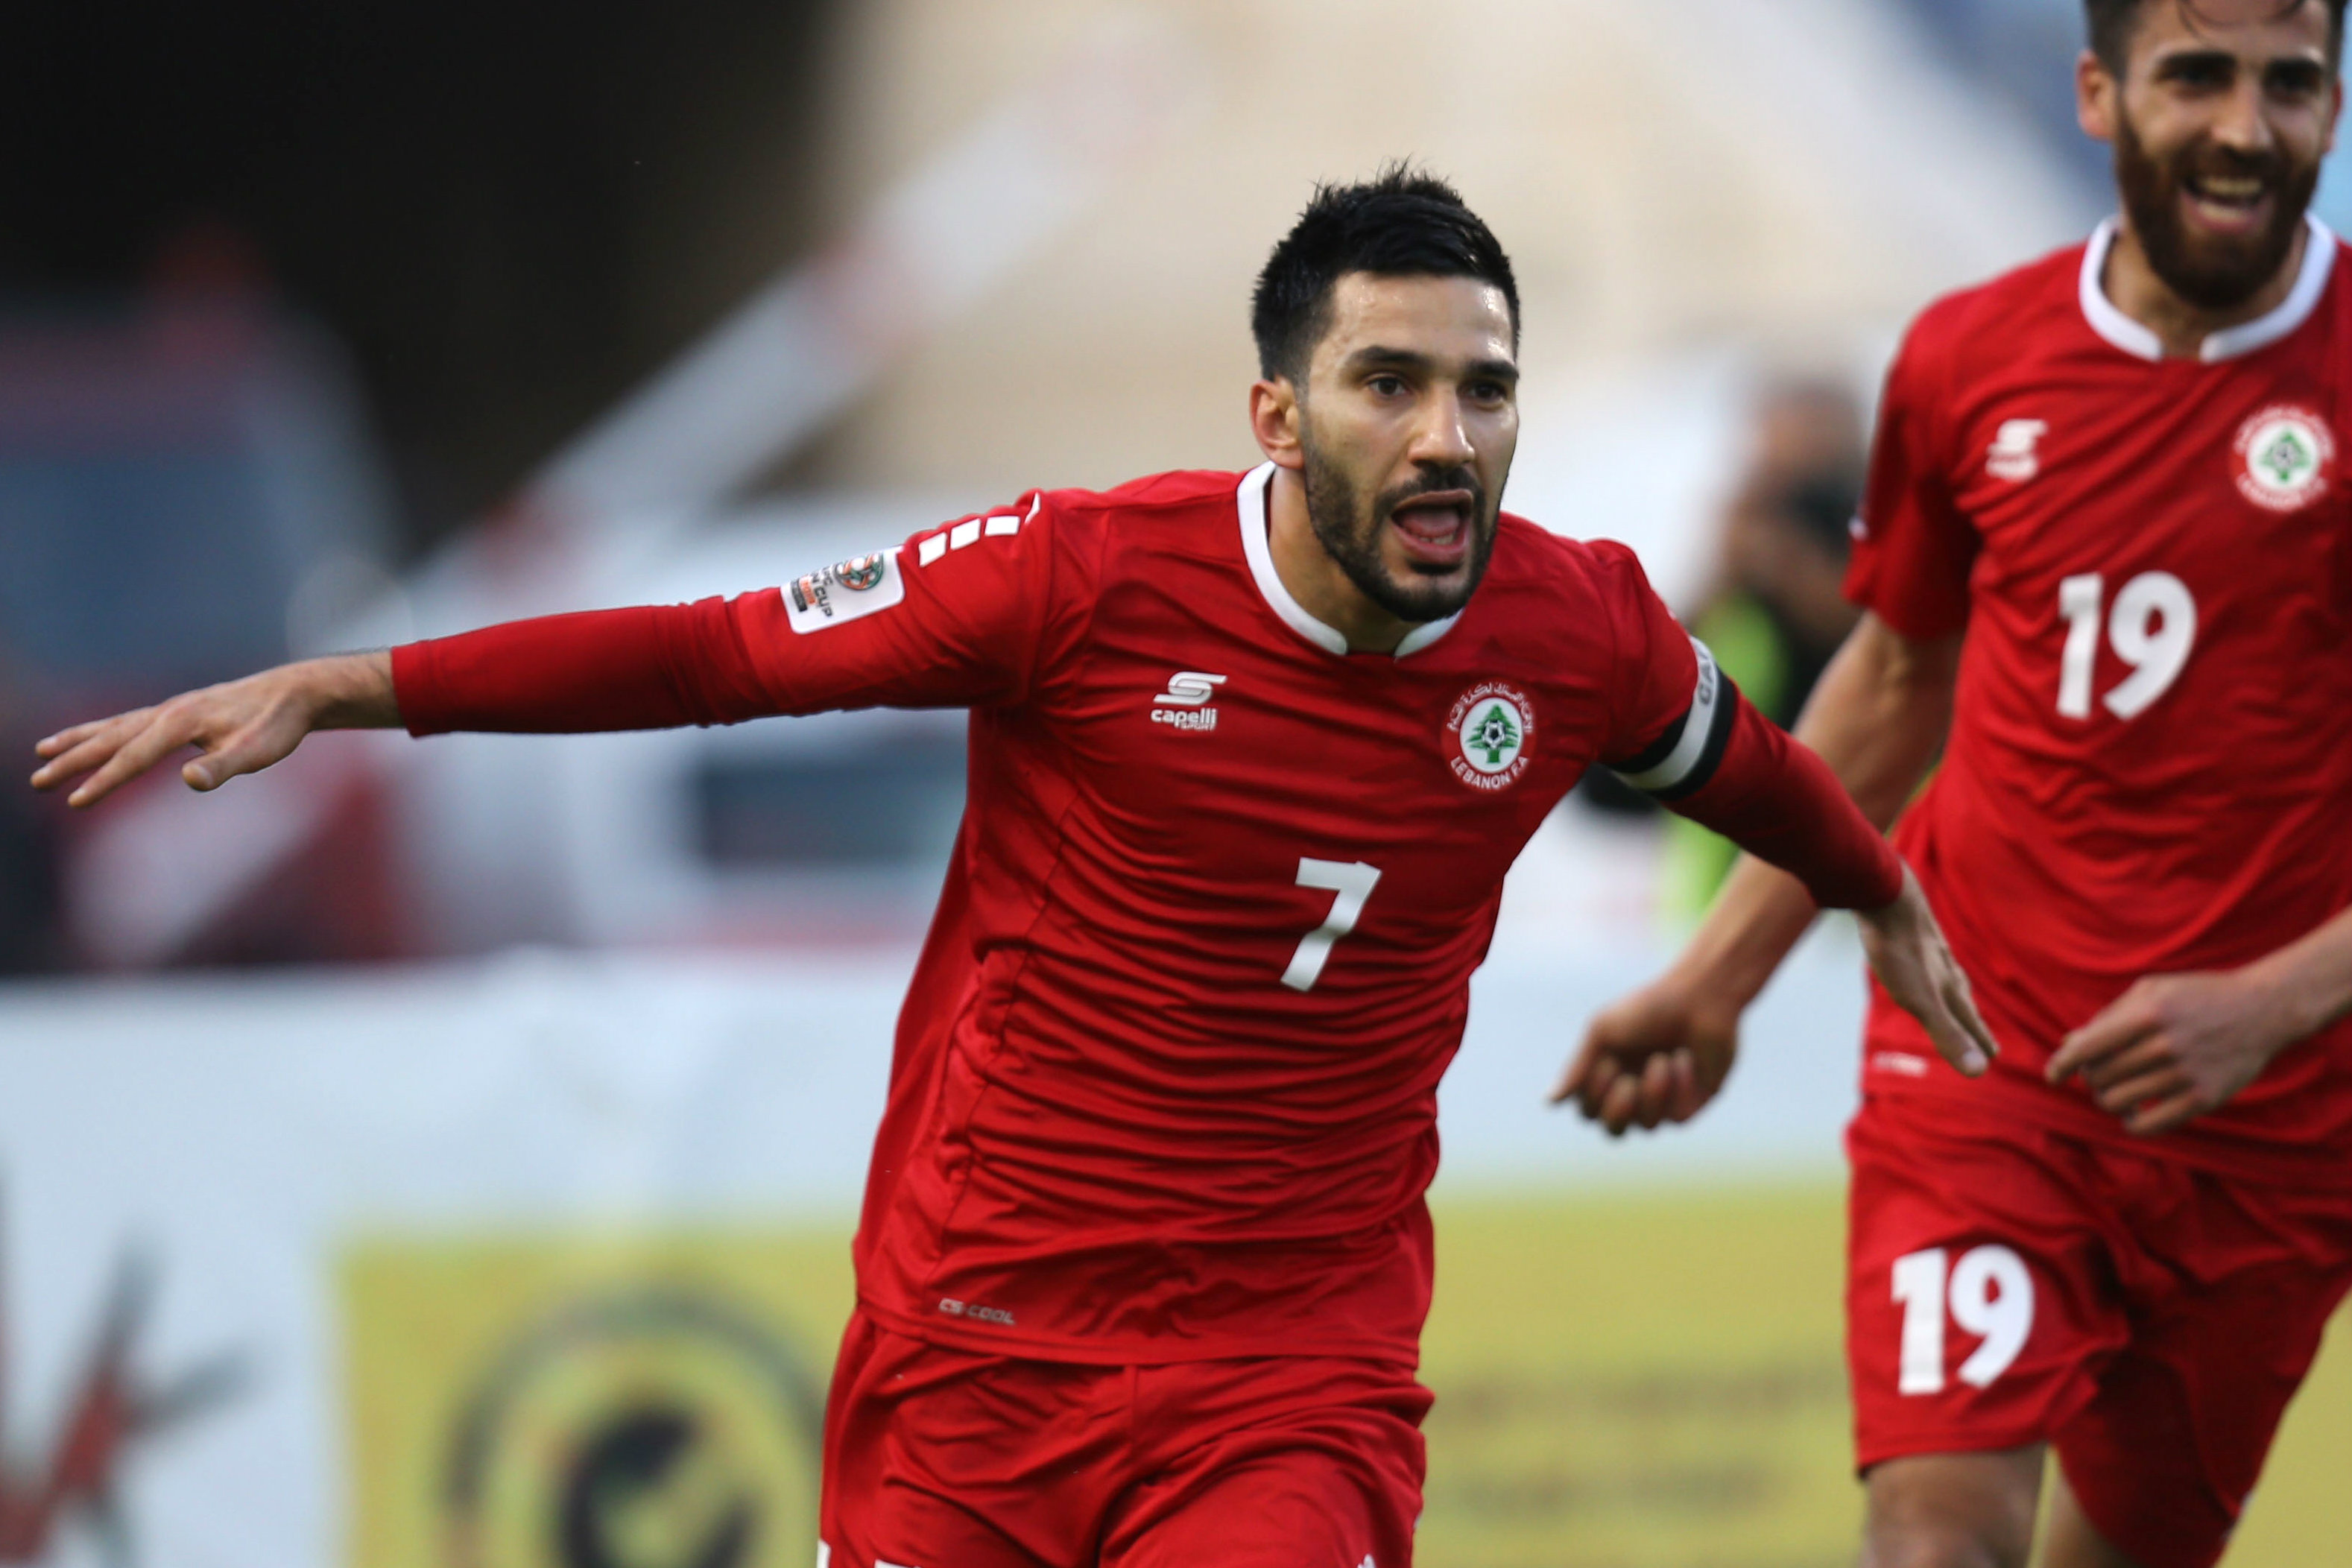 Skipper Hassan Maatouk has been a standout in qualification.